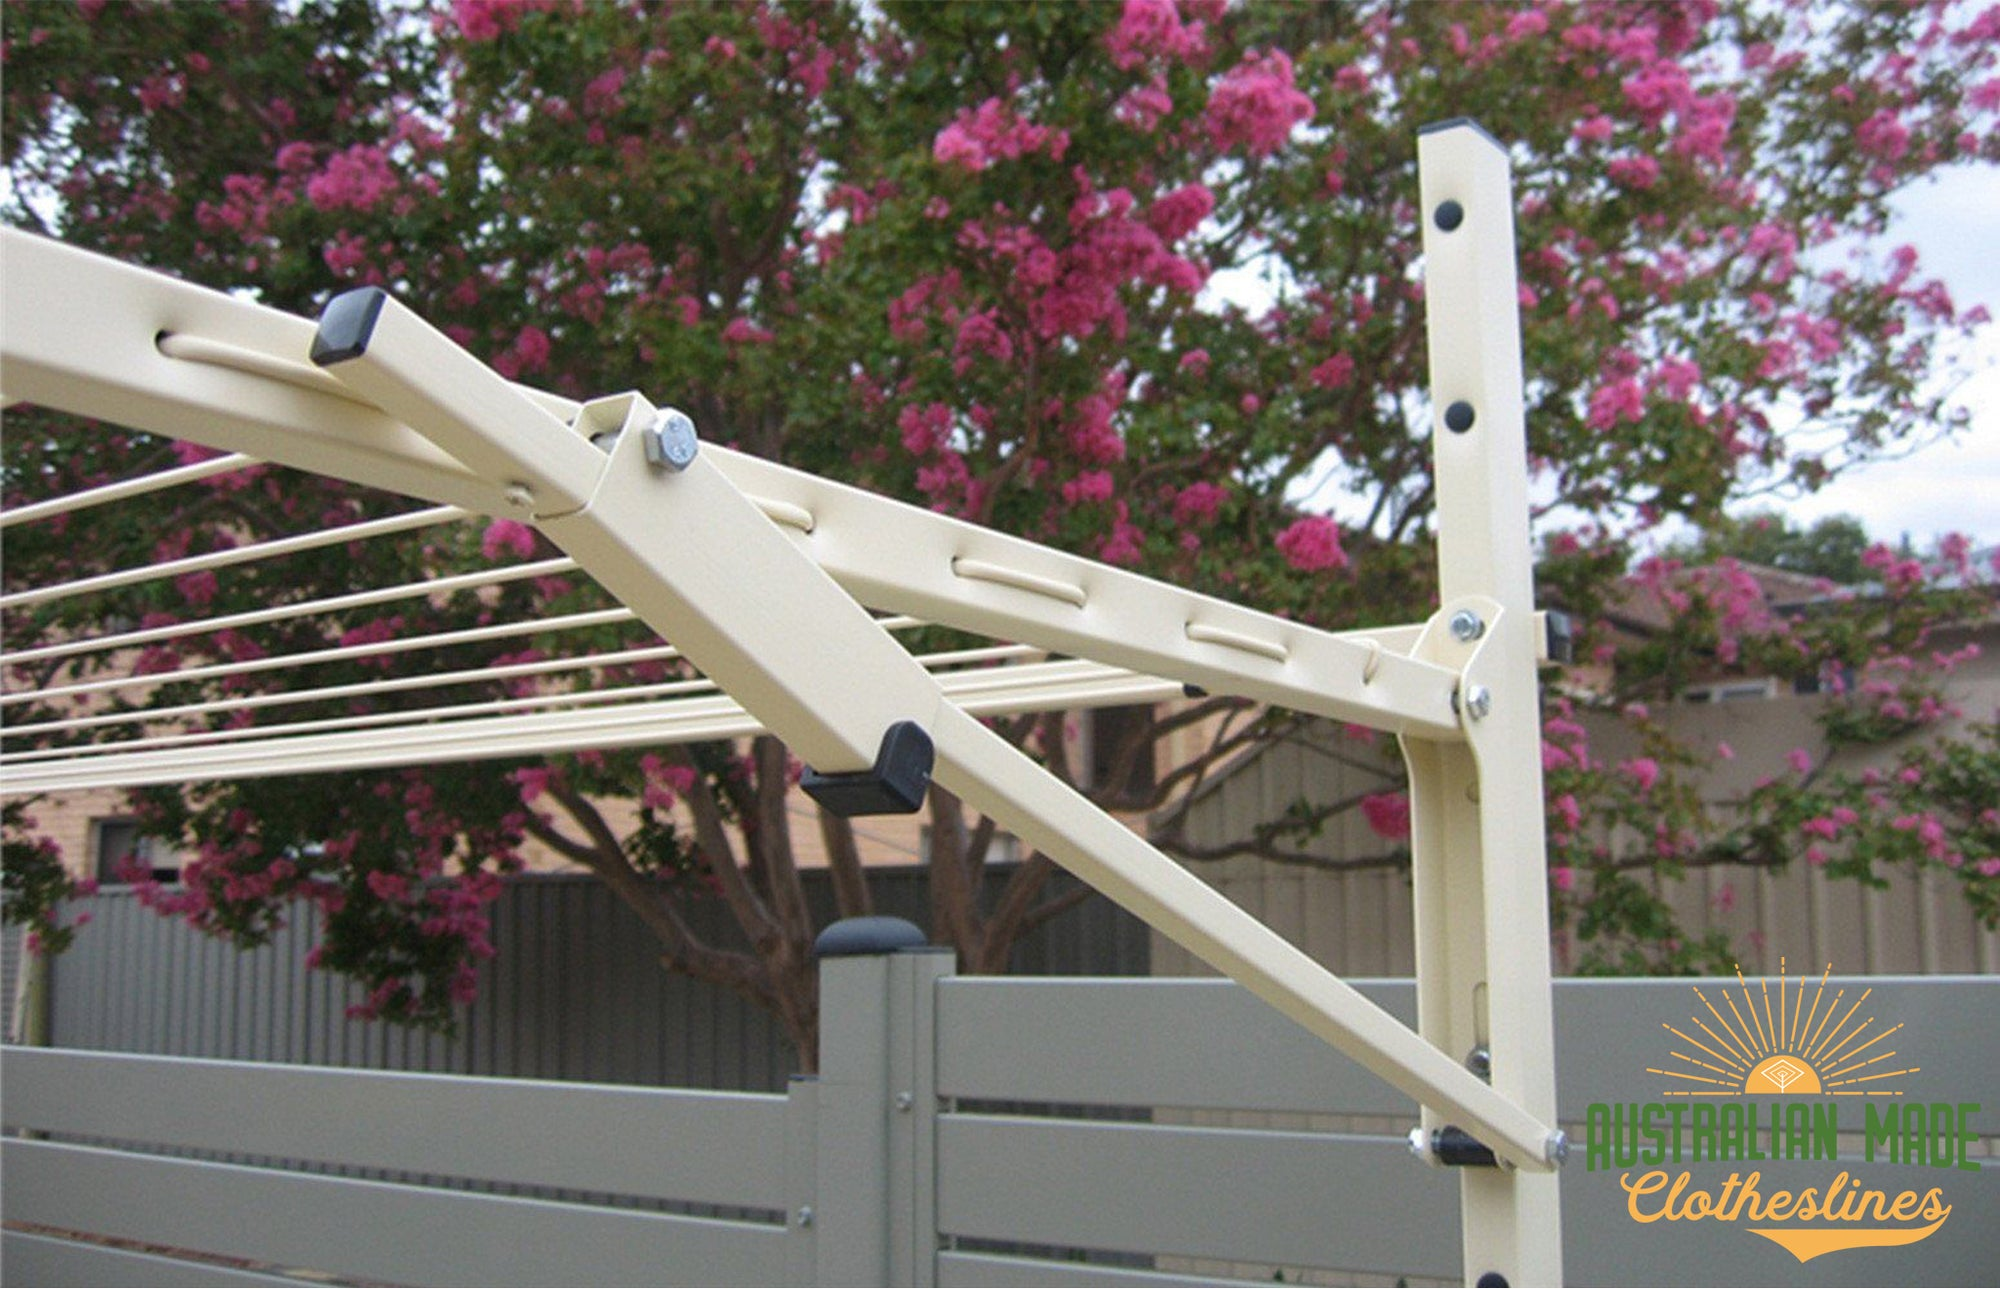 Austral 3.3m Ground Mount Kit - Left Side Perspective - Australian Made Clotheslines